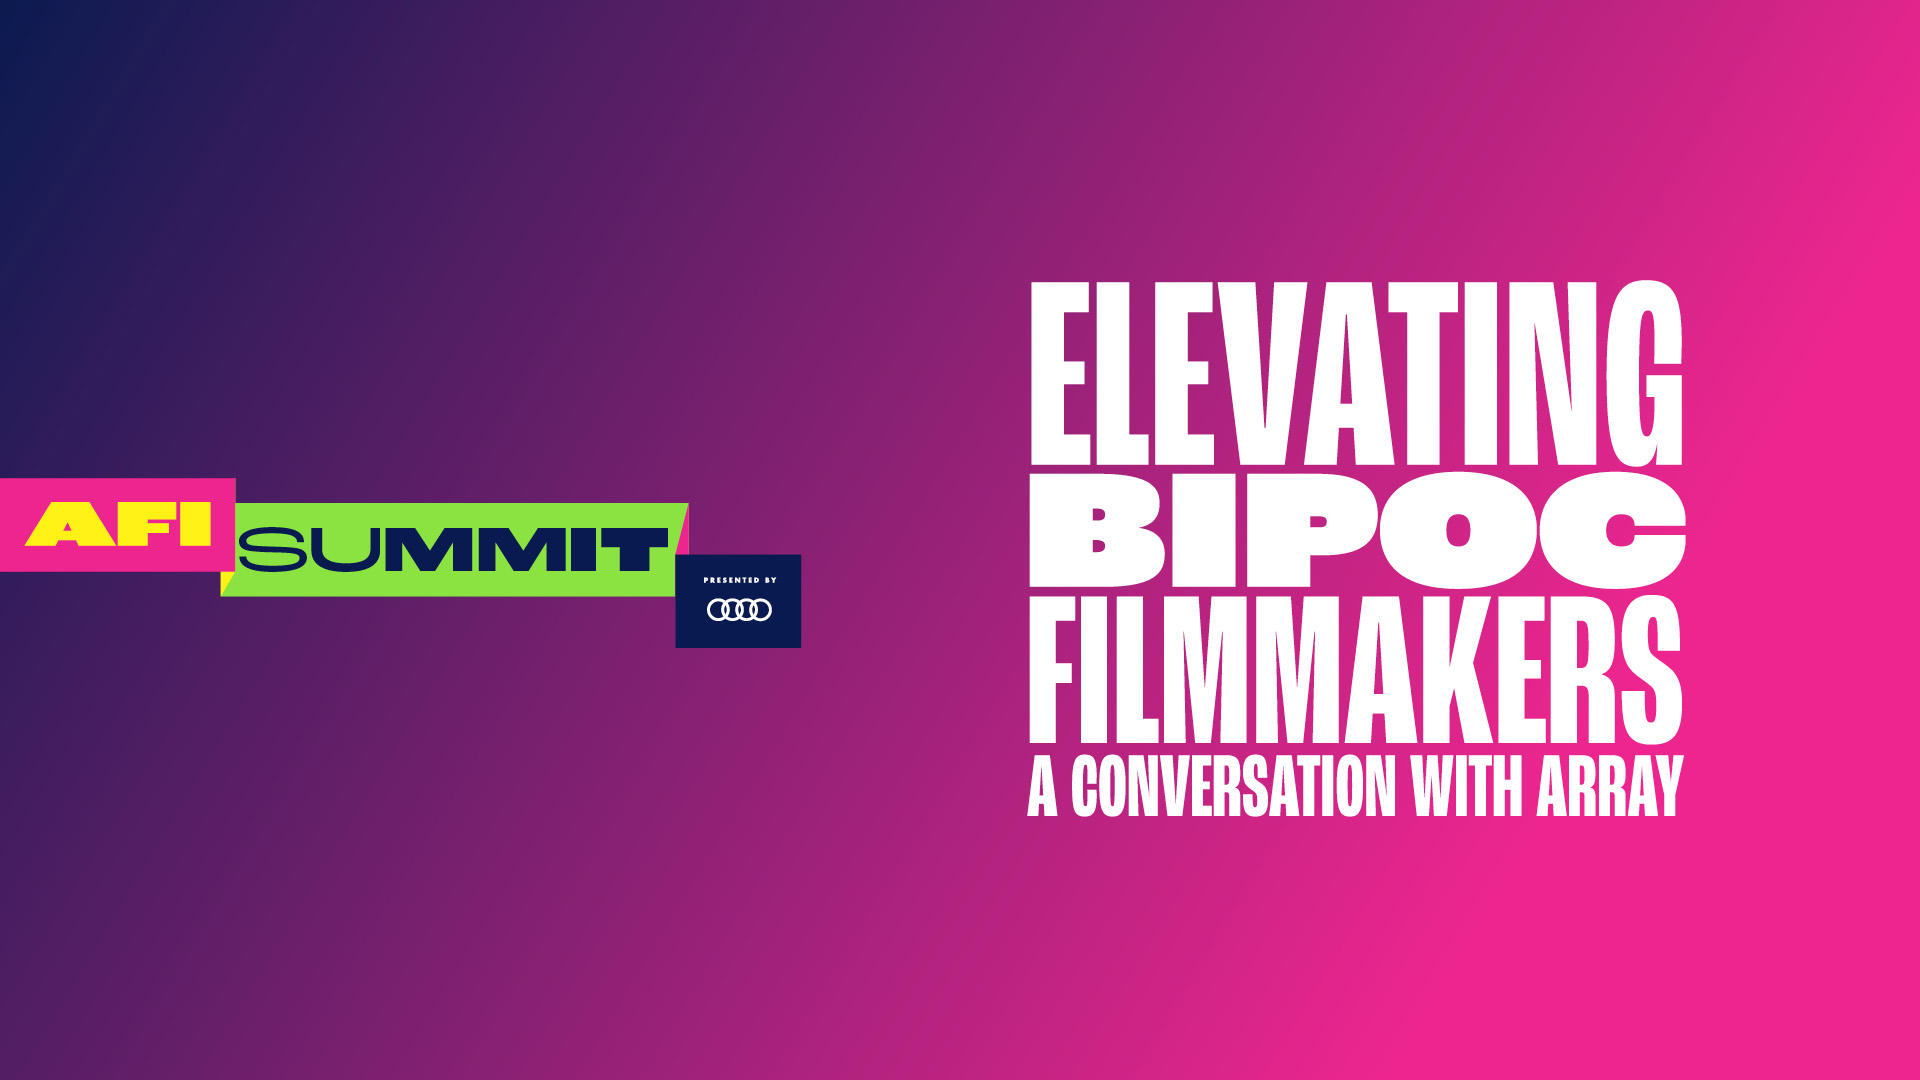 ELEVATING BIPOC FILMMAKERS: A CONVERSATION WITH ARRAY